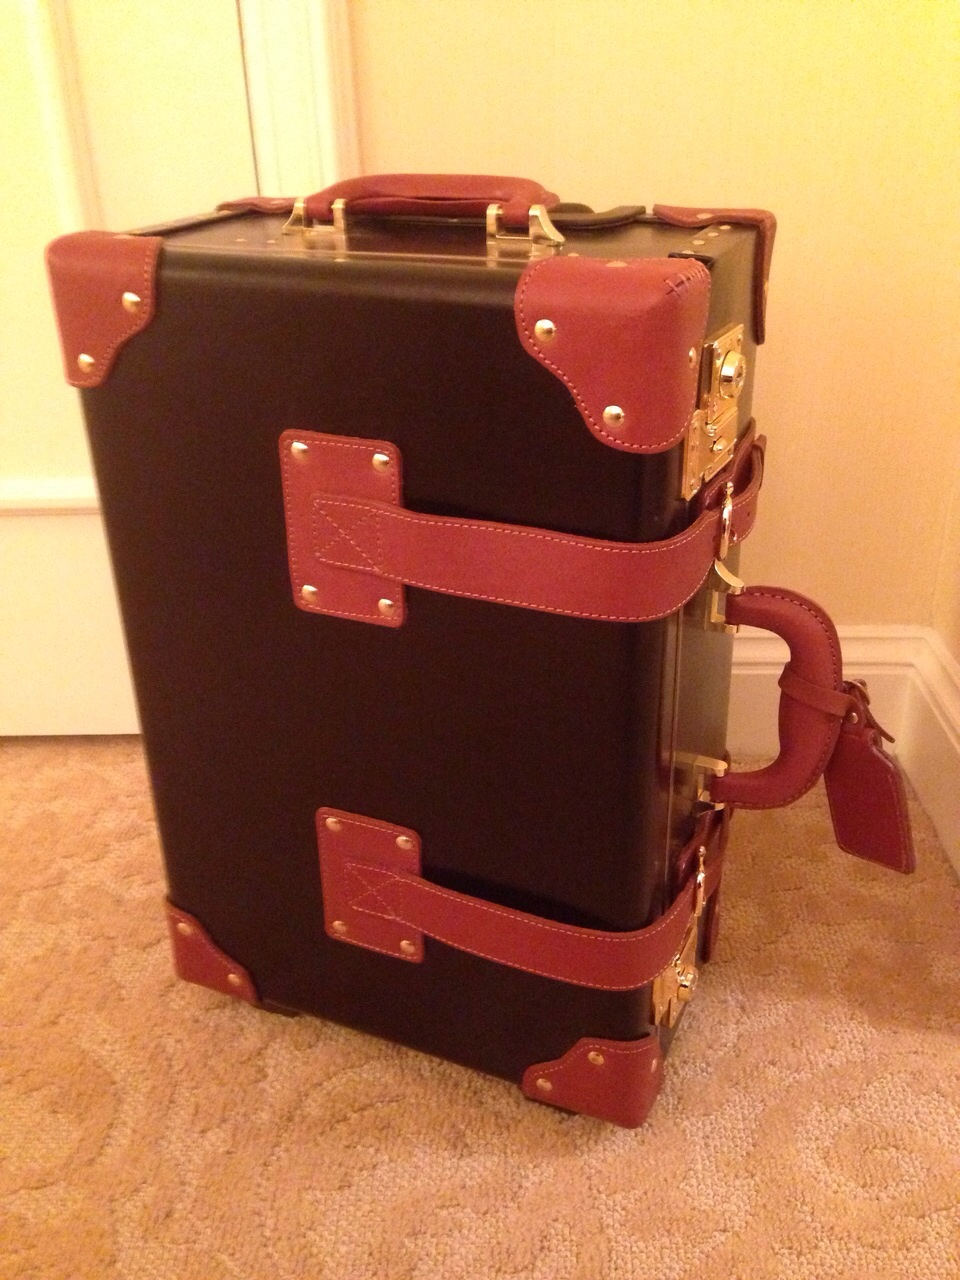 Steamline Luggage – Travel into the Past